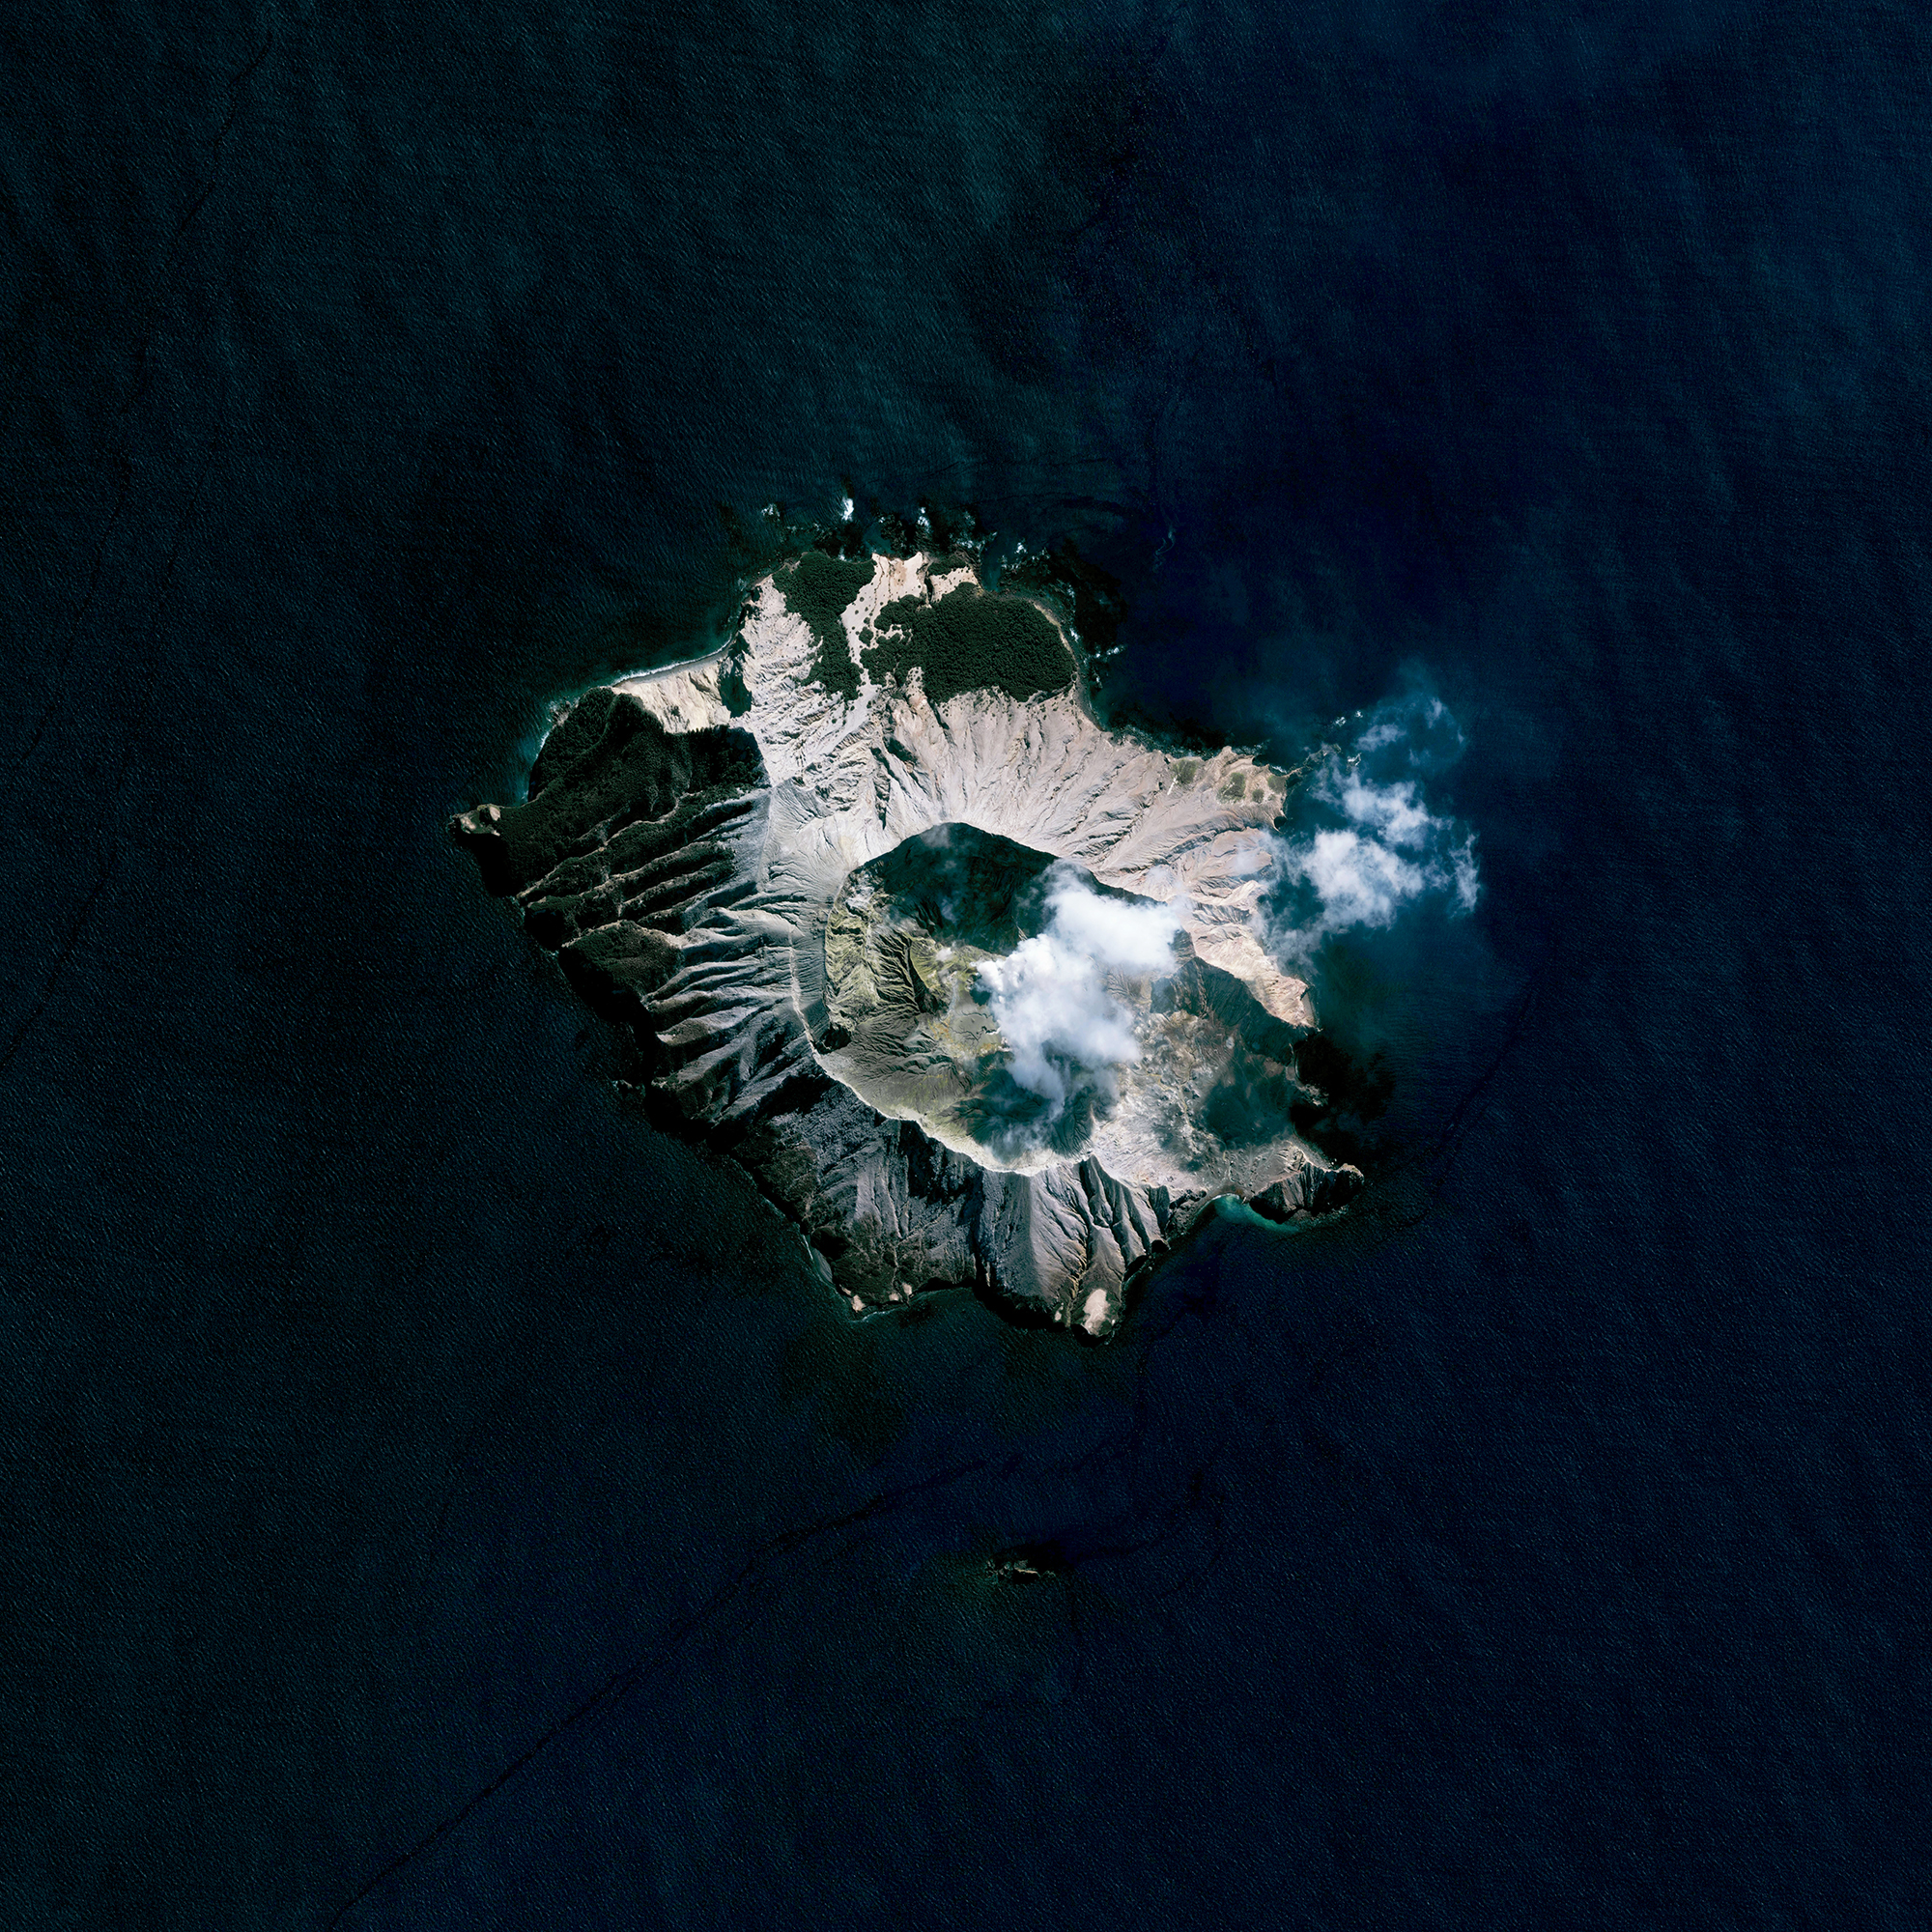 8/29/2016   Whakaari / White Island   Bay of Plenty, New Zealand   37°31′S 177°11′E     Whakaari, also known as White Island, is an active stratovolcano, situated 48 km (30 mi) from the North Island of New Zealand in the Bay of Plenty. Whakaari is New Zealand's most active volcano, and has been built up by continuous eruptions over the past 150,000 years. The island is approximately 2 km (1.2 mi) in diameter and rises to a height of 321 m (1,053 ft) above sea level.